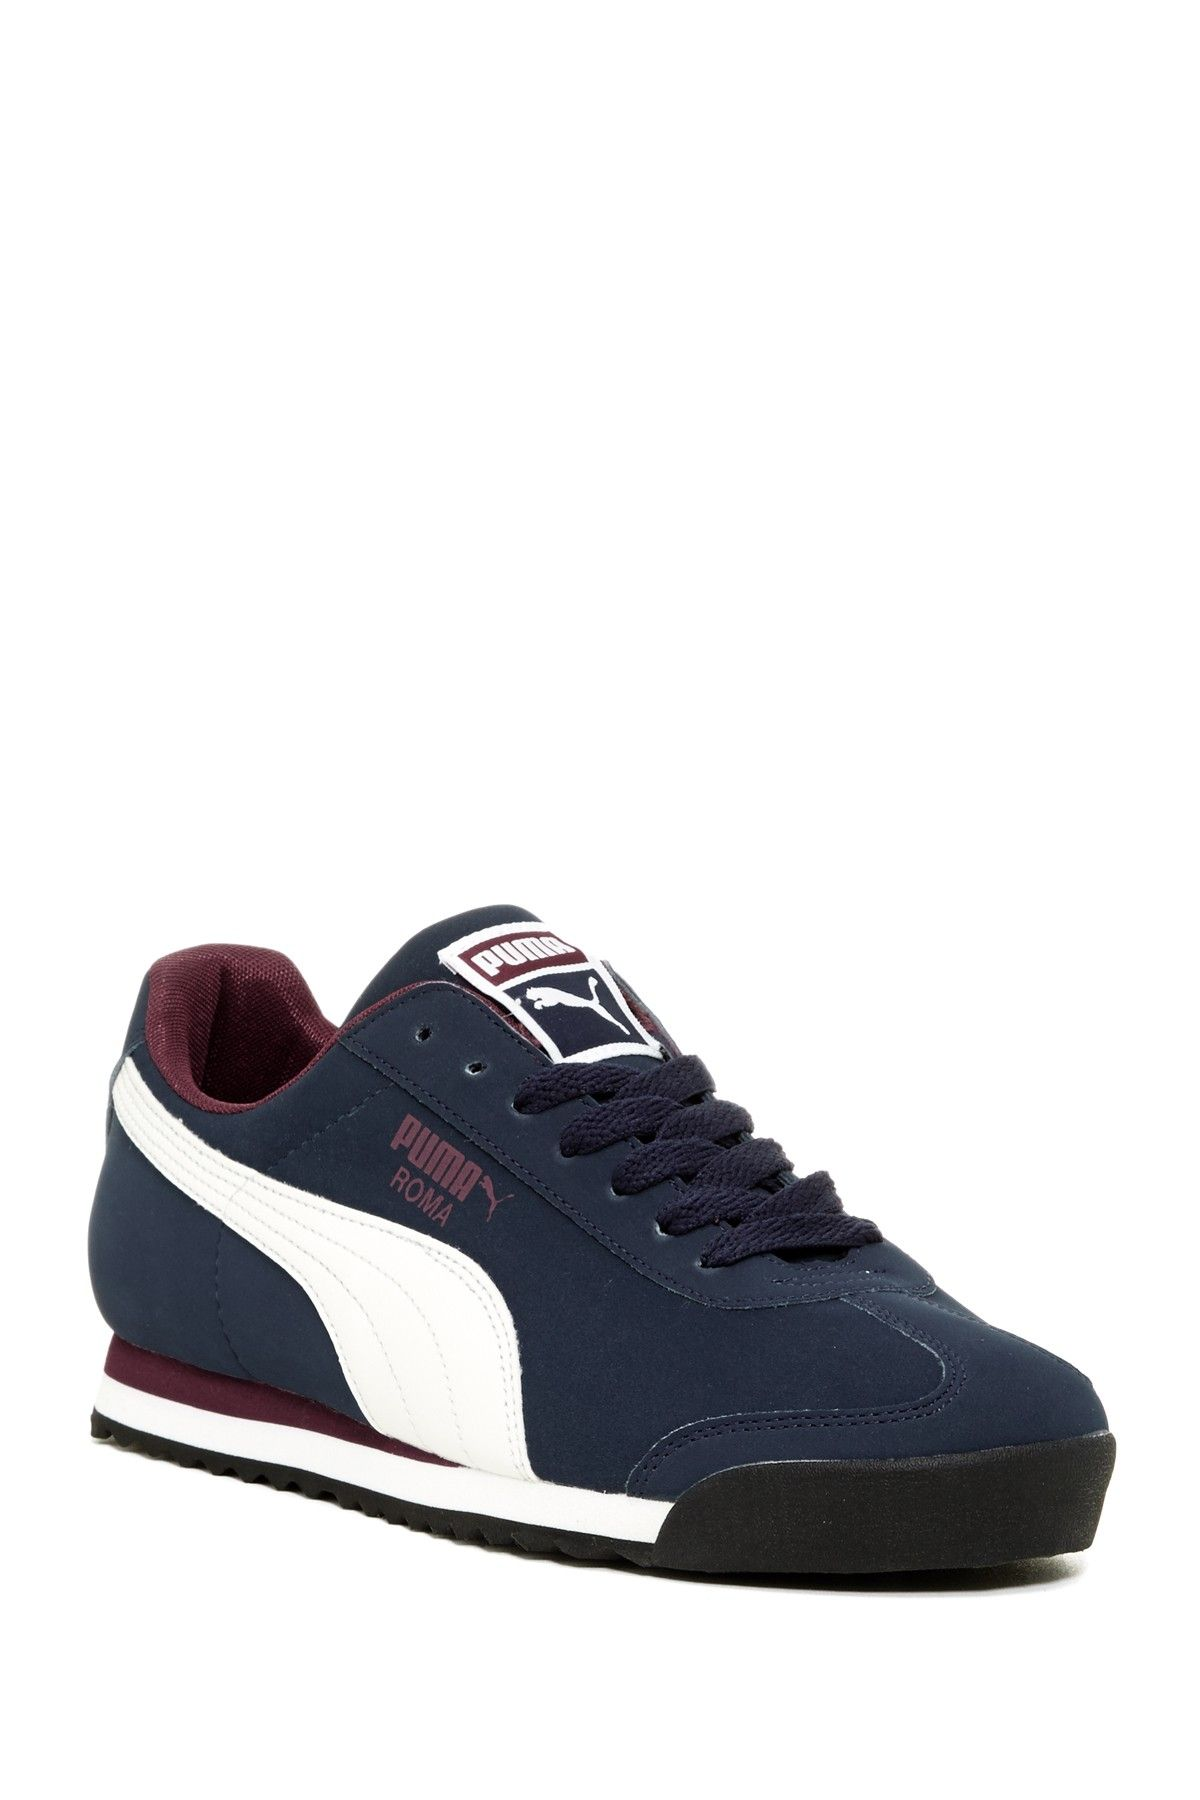 mens puma roma trainers